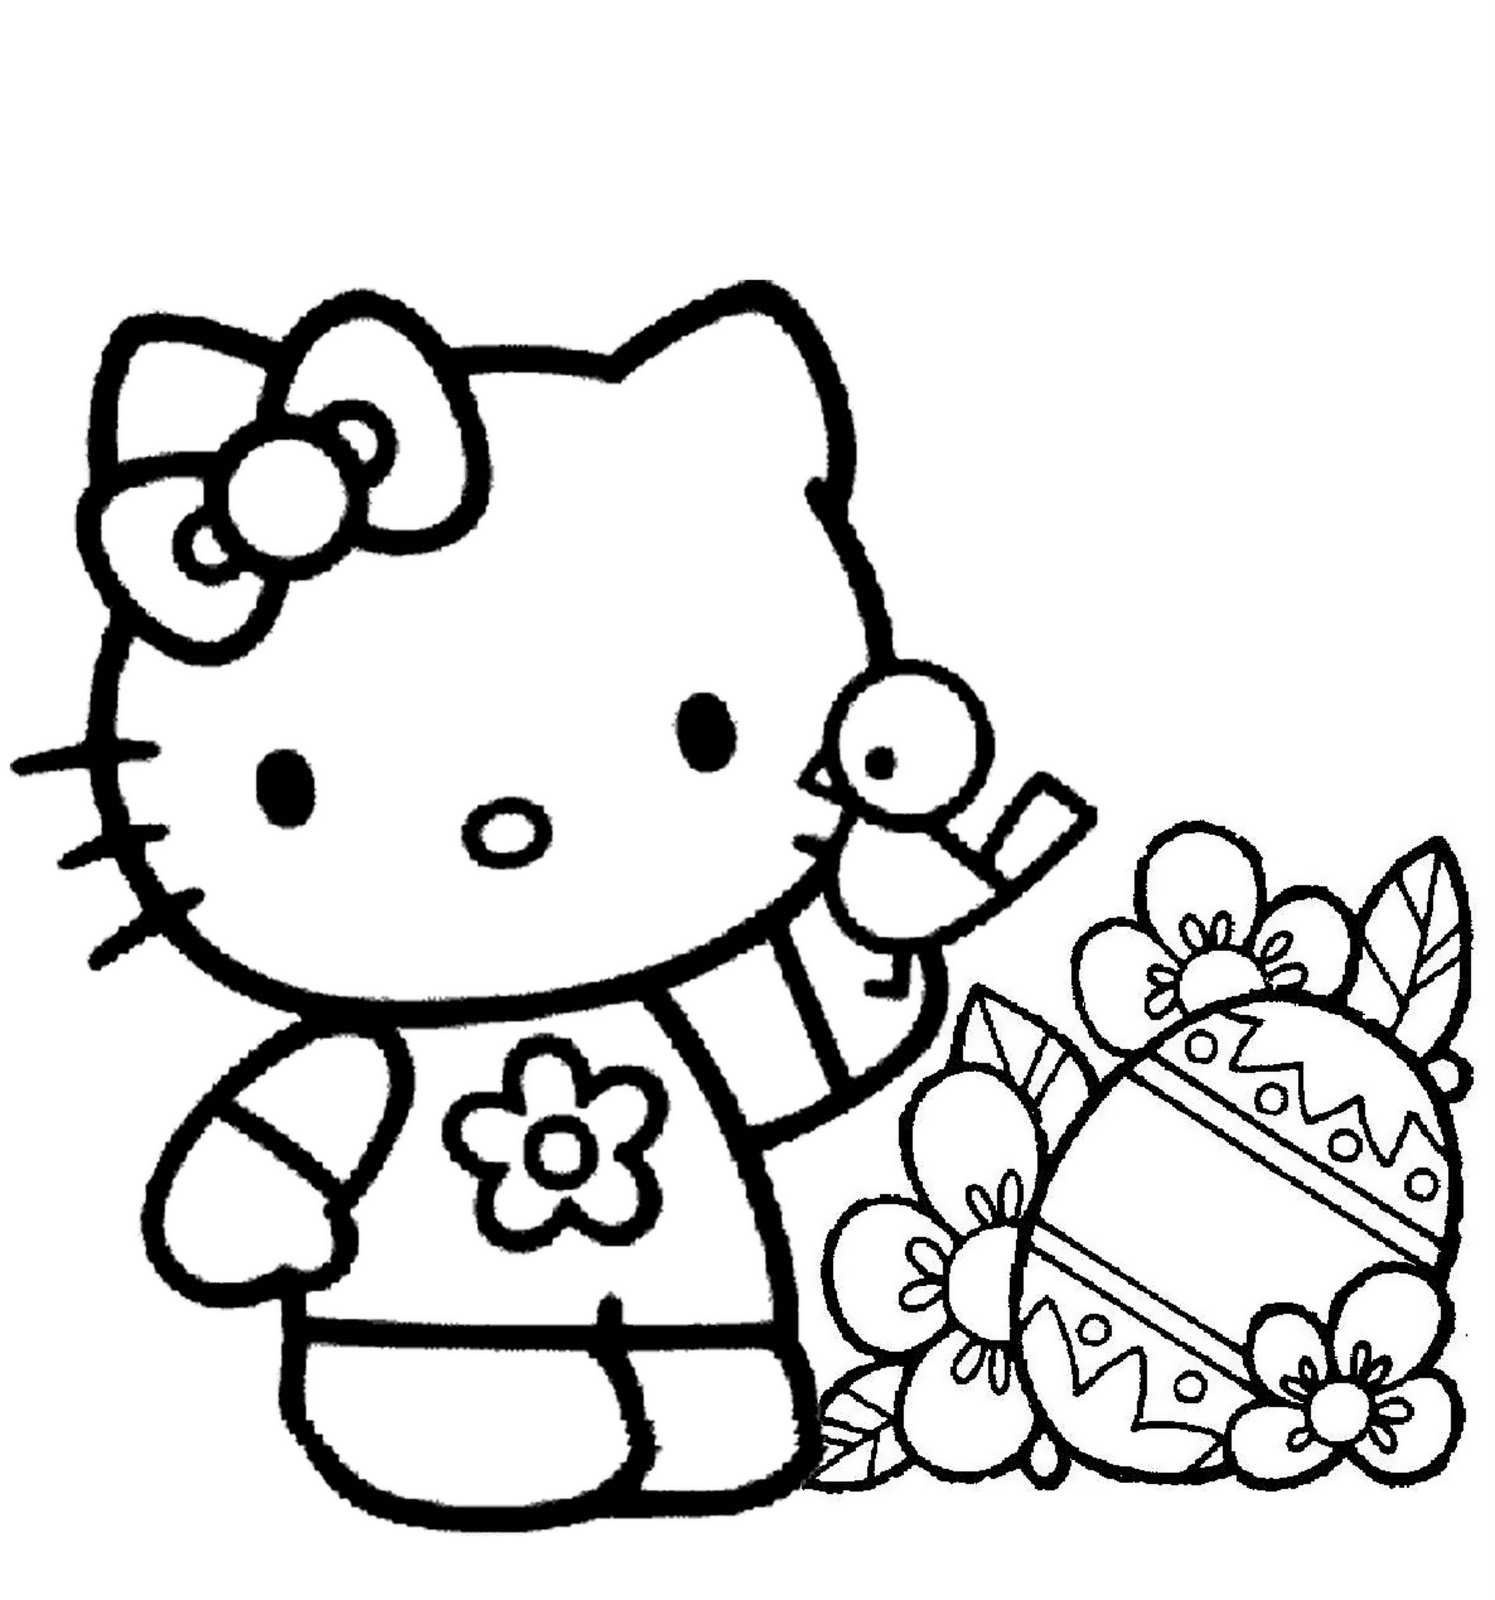 1495x1600 Film Barbie Coloring Pages Bird Coloring Pages Hello Kitty Print